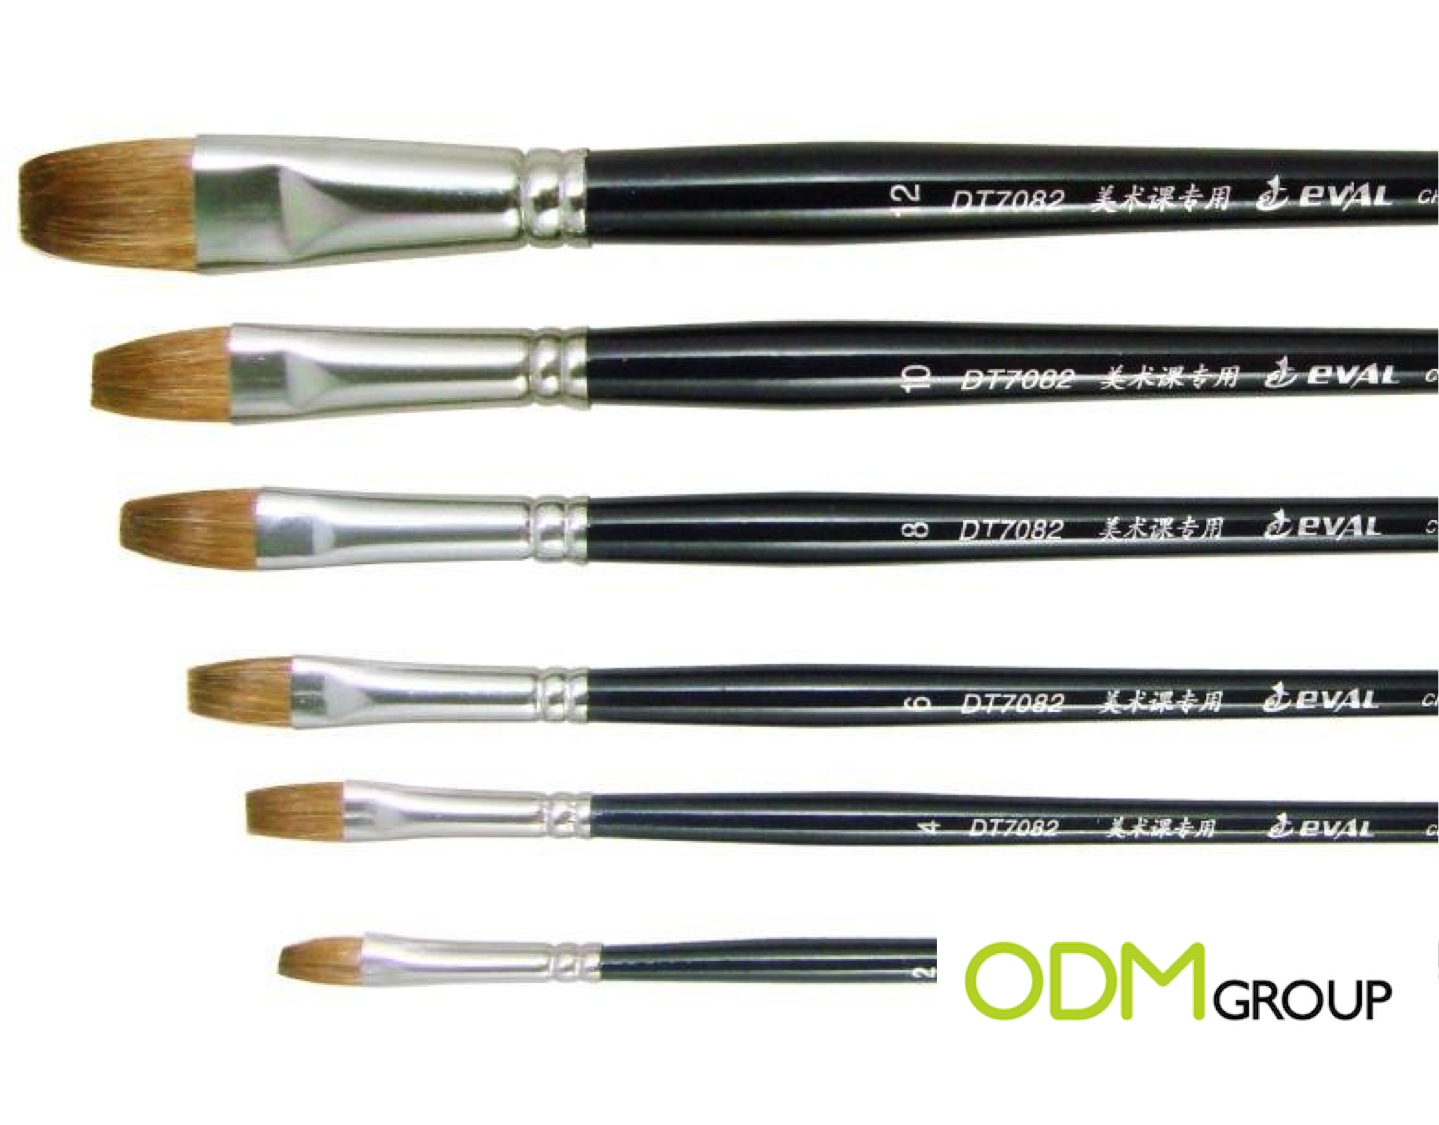 Art materials; everything to let your creativity flow!